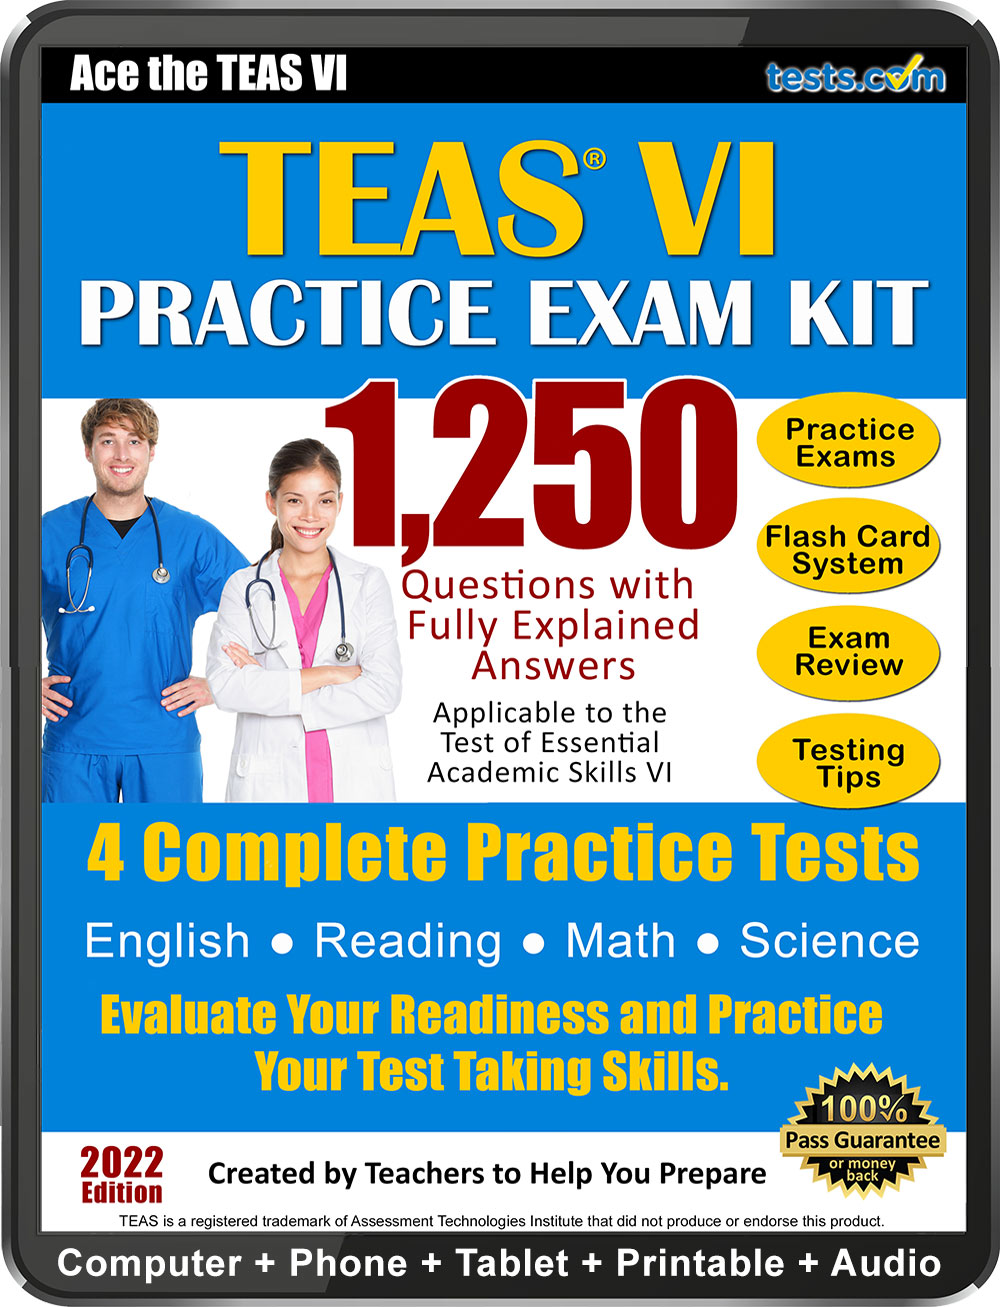 Complete practice test for the teas v nursing school preparation prepare for the teas vi using this expert written practice exam with answers fully explained for ideal study fandeluxe Choice Image